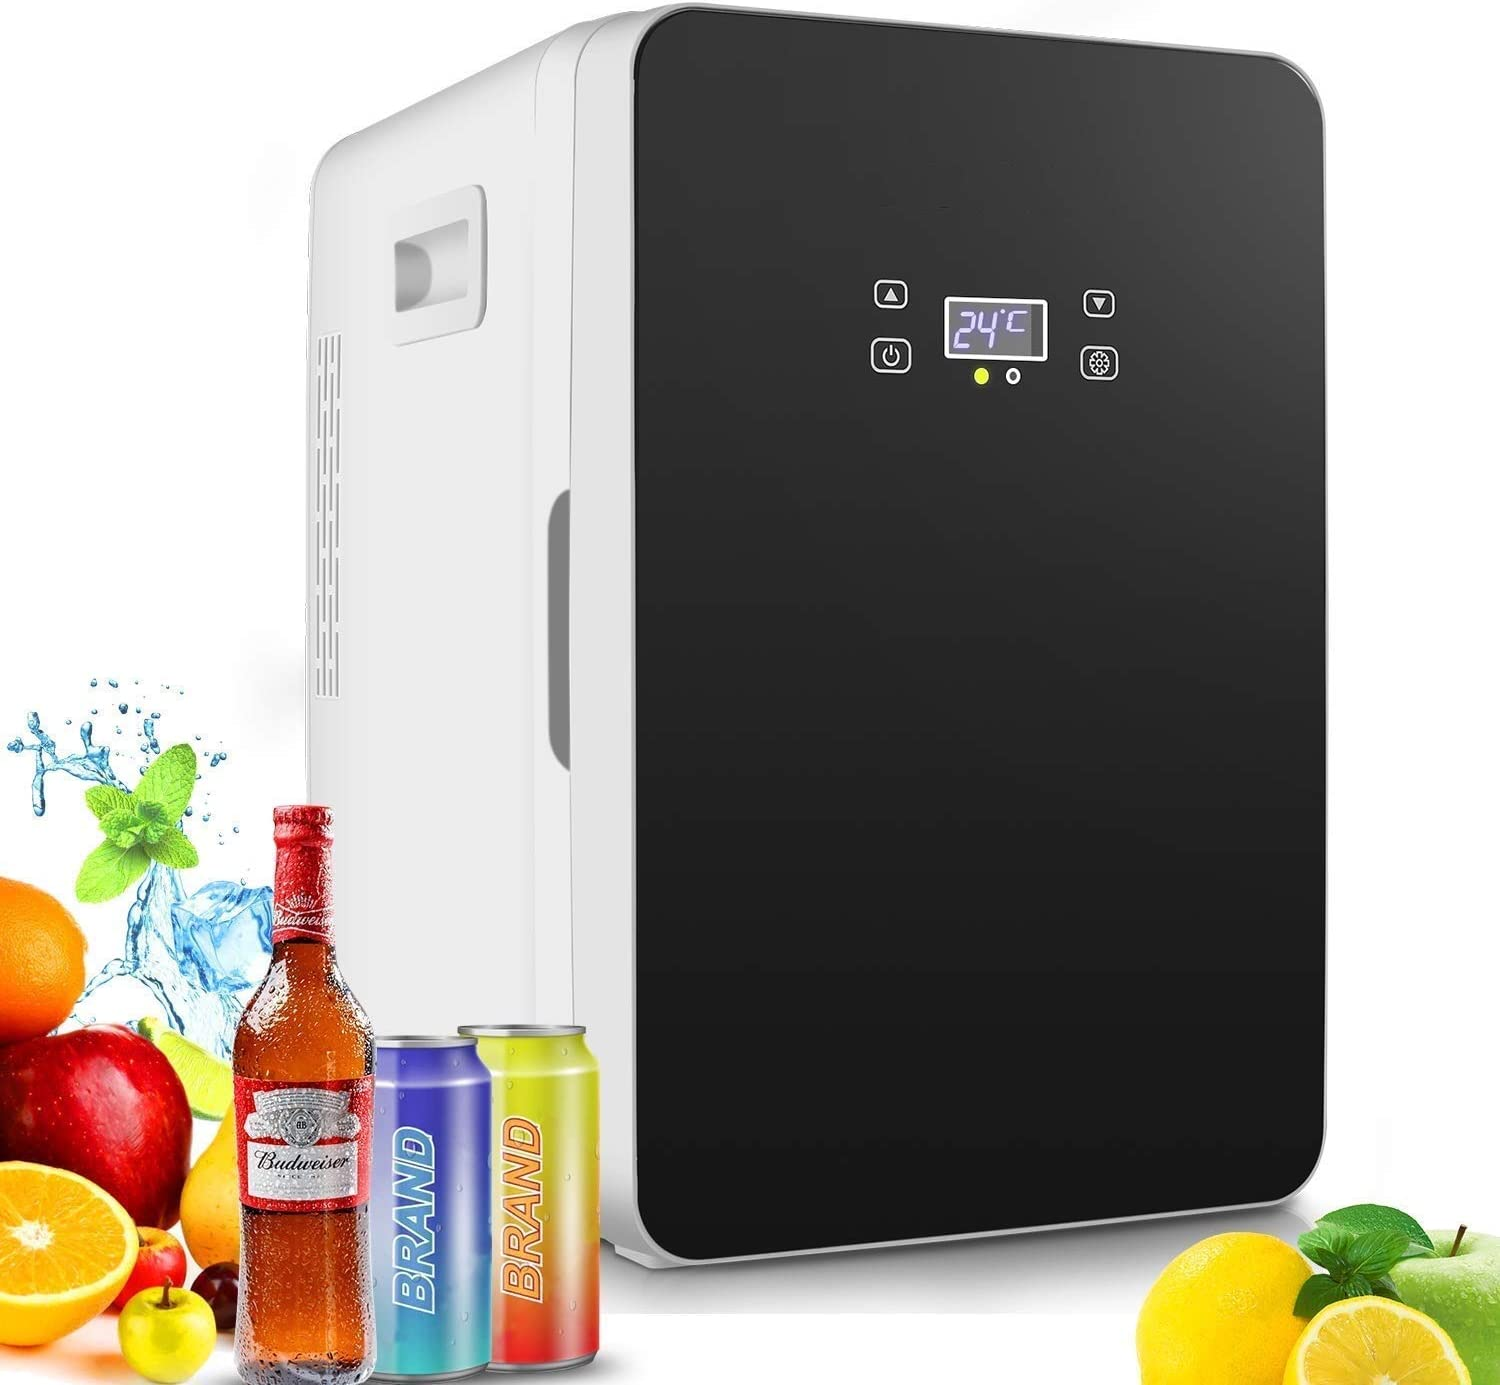 20-liter Compact Cooler/Warmer Mini Fridge/Wine Cooler with LCD Display + Digital Thermostat + Cooling for Cars, Road Trips, Homes, Offices & Dorms